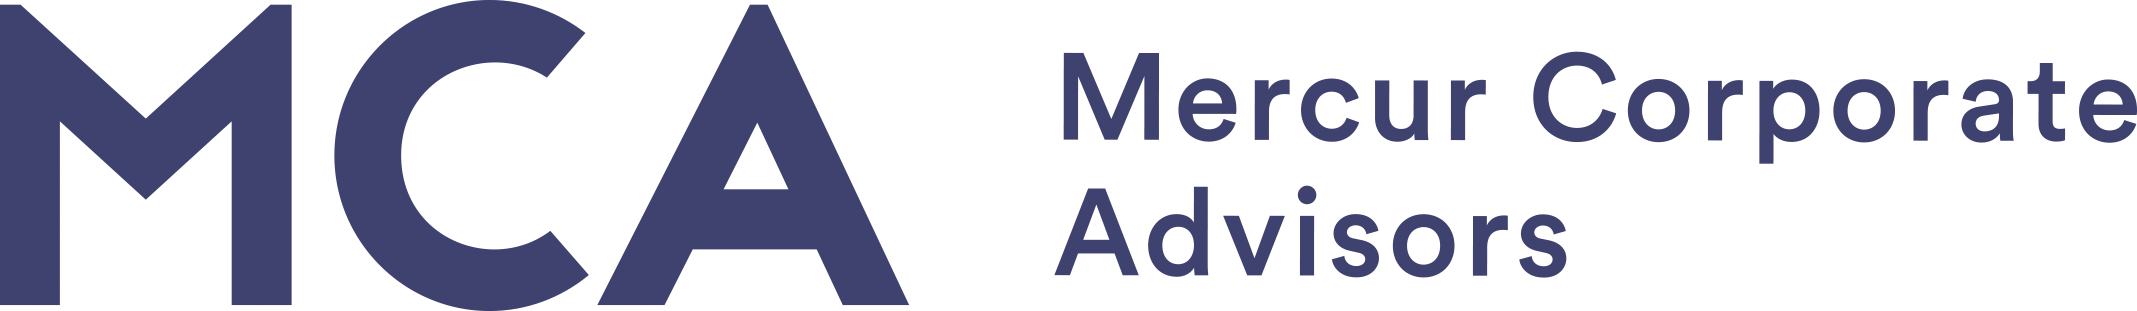 Mercur Corporate Advisors